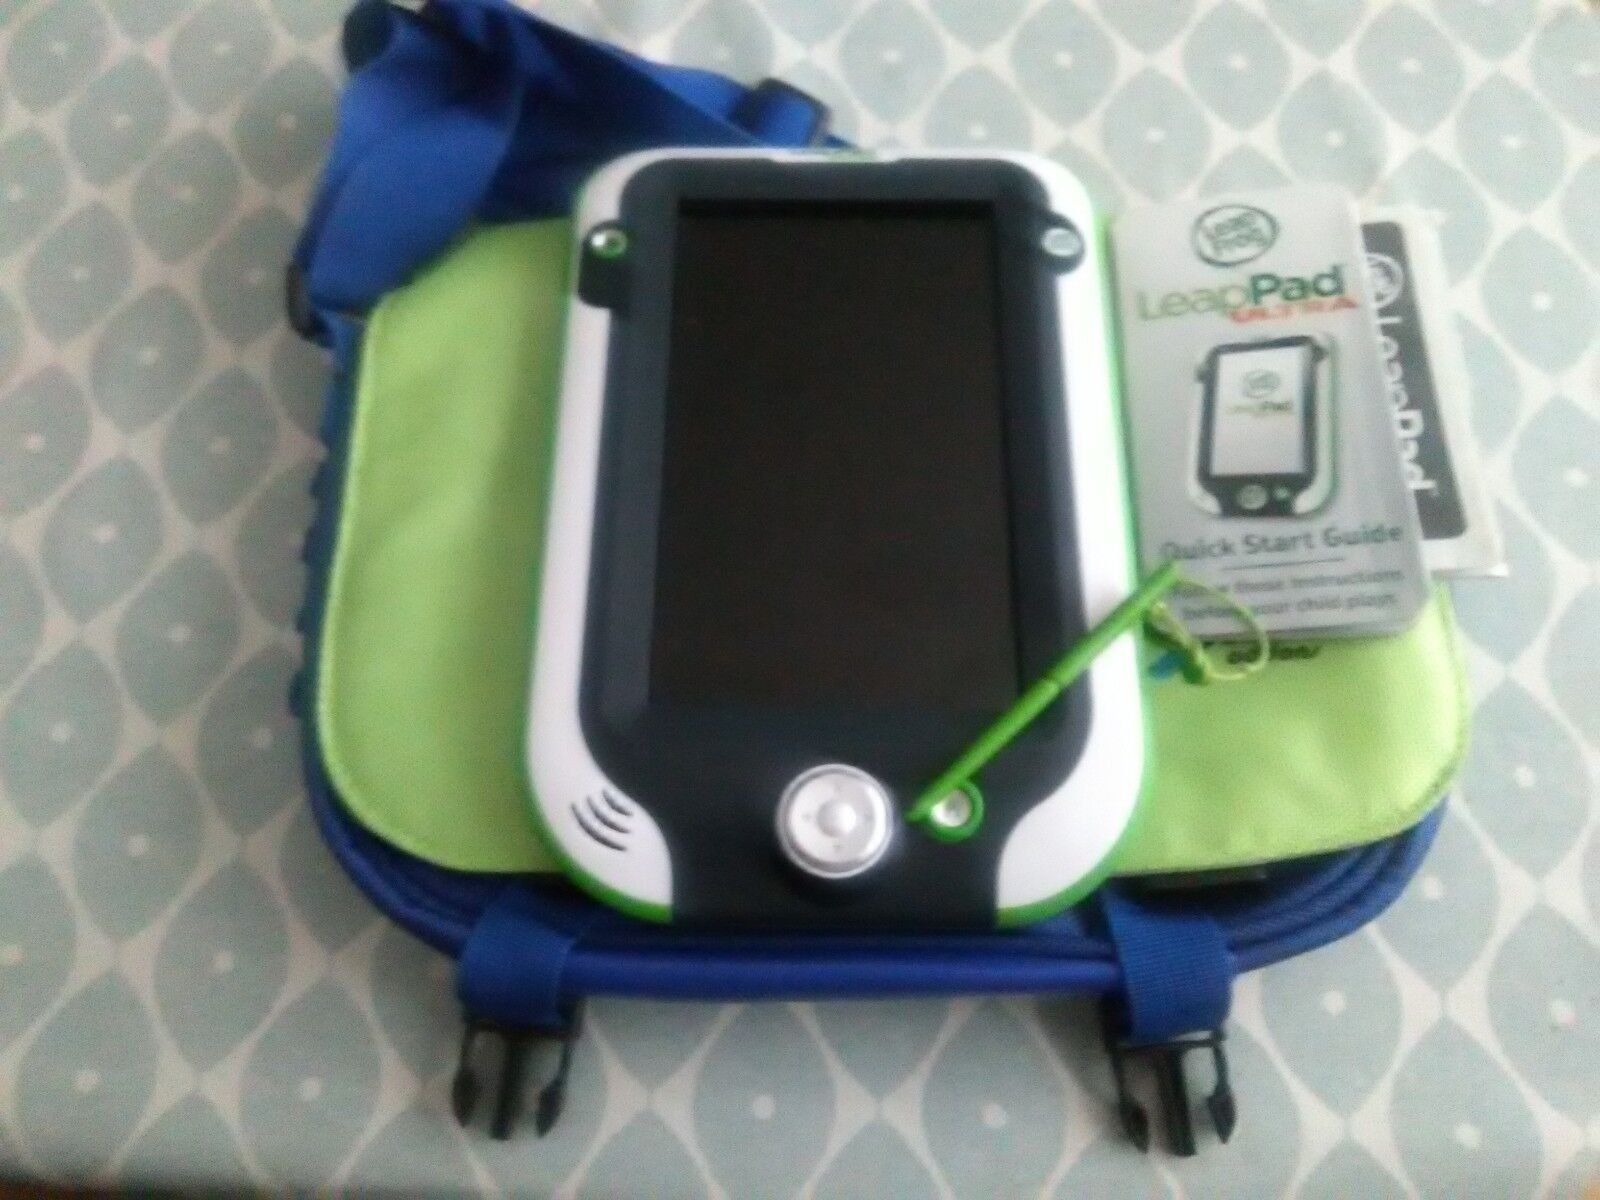 Leappad Ultra by Leapfrog - Green Tablet - With accessories